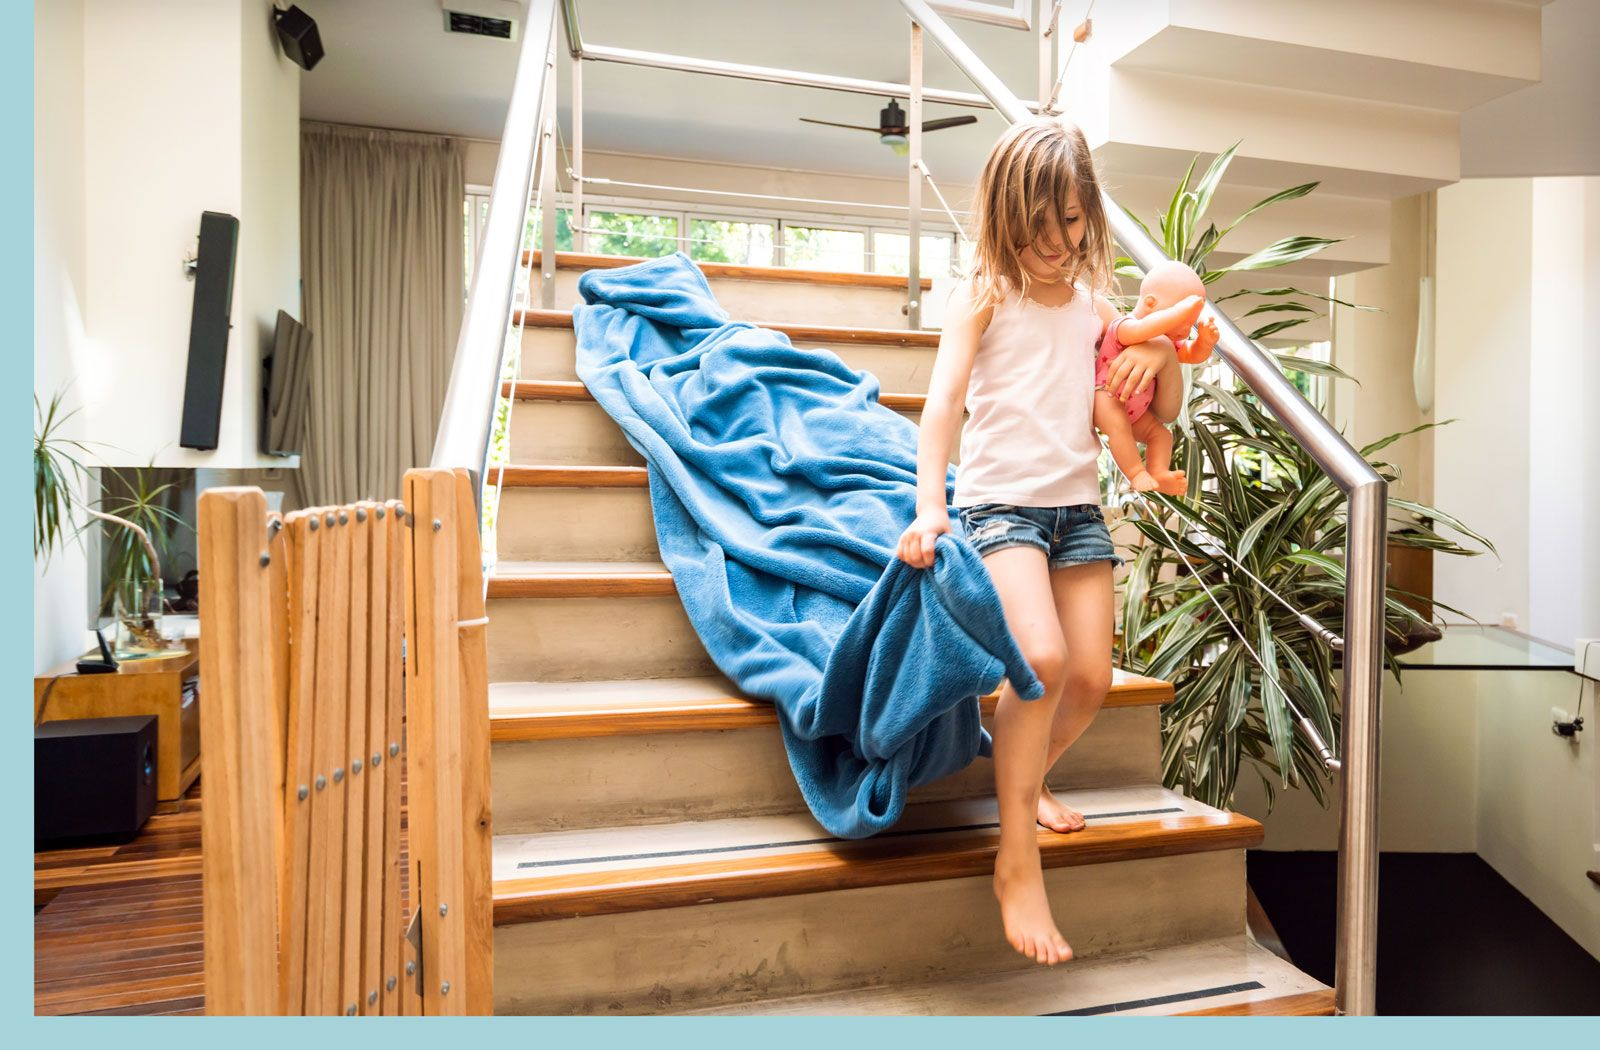 How to Make an Epic Pillow Fort (and Free Printables!) - The Life We Build